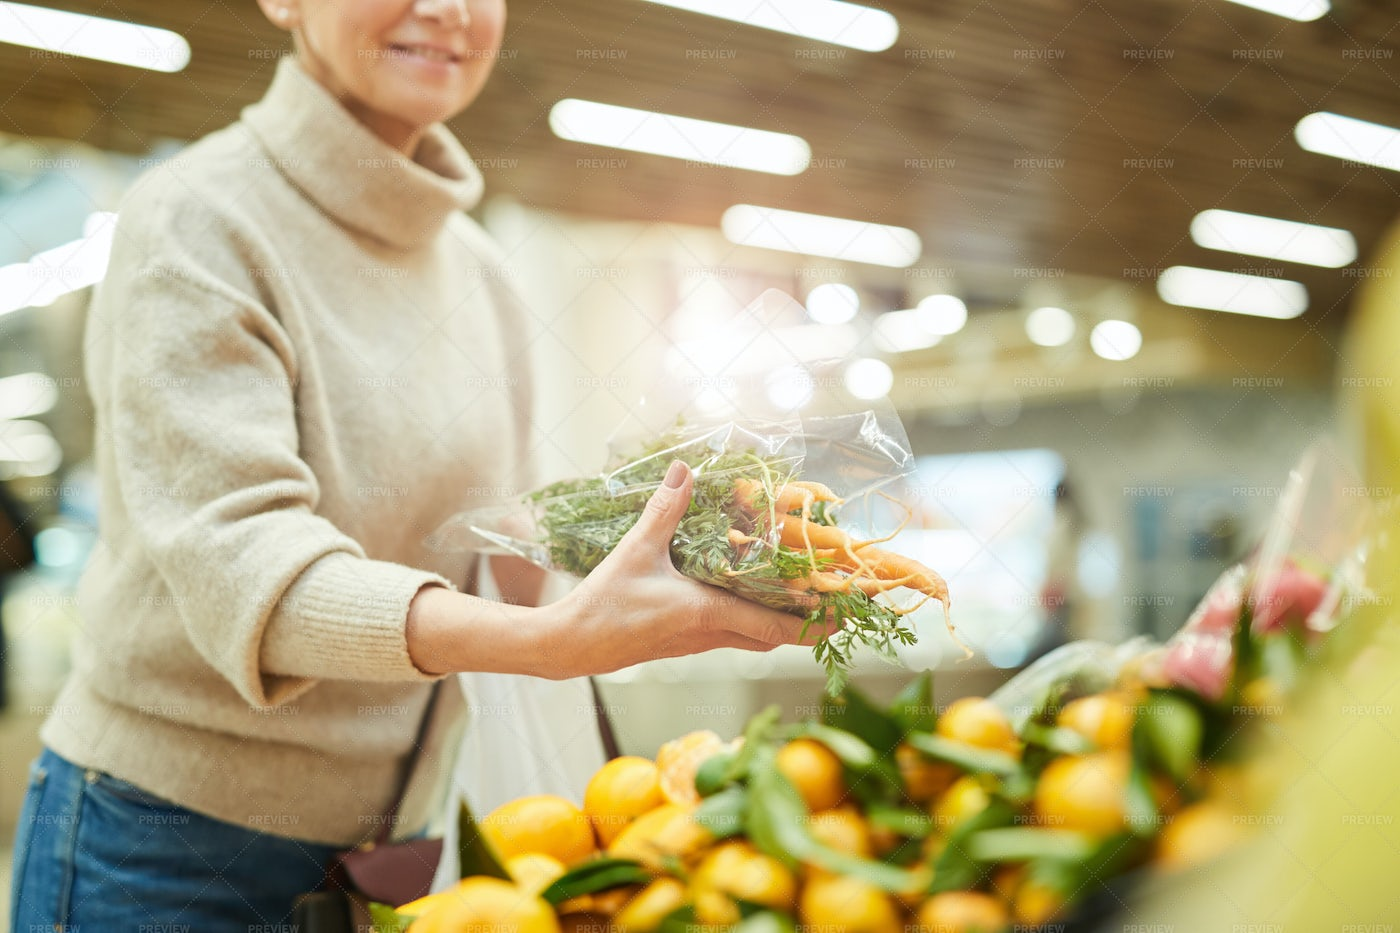 Woman Buying Fresh Vegetables: Stock Photos